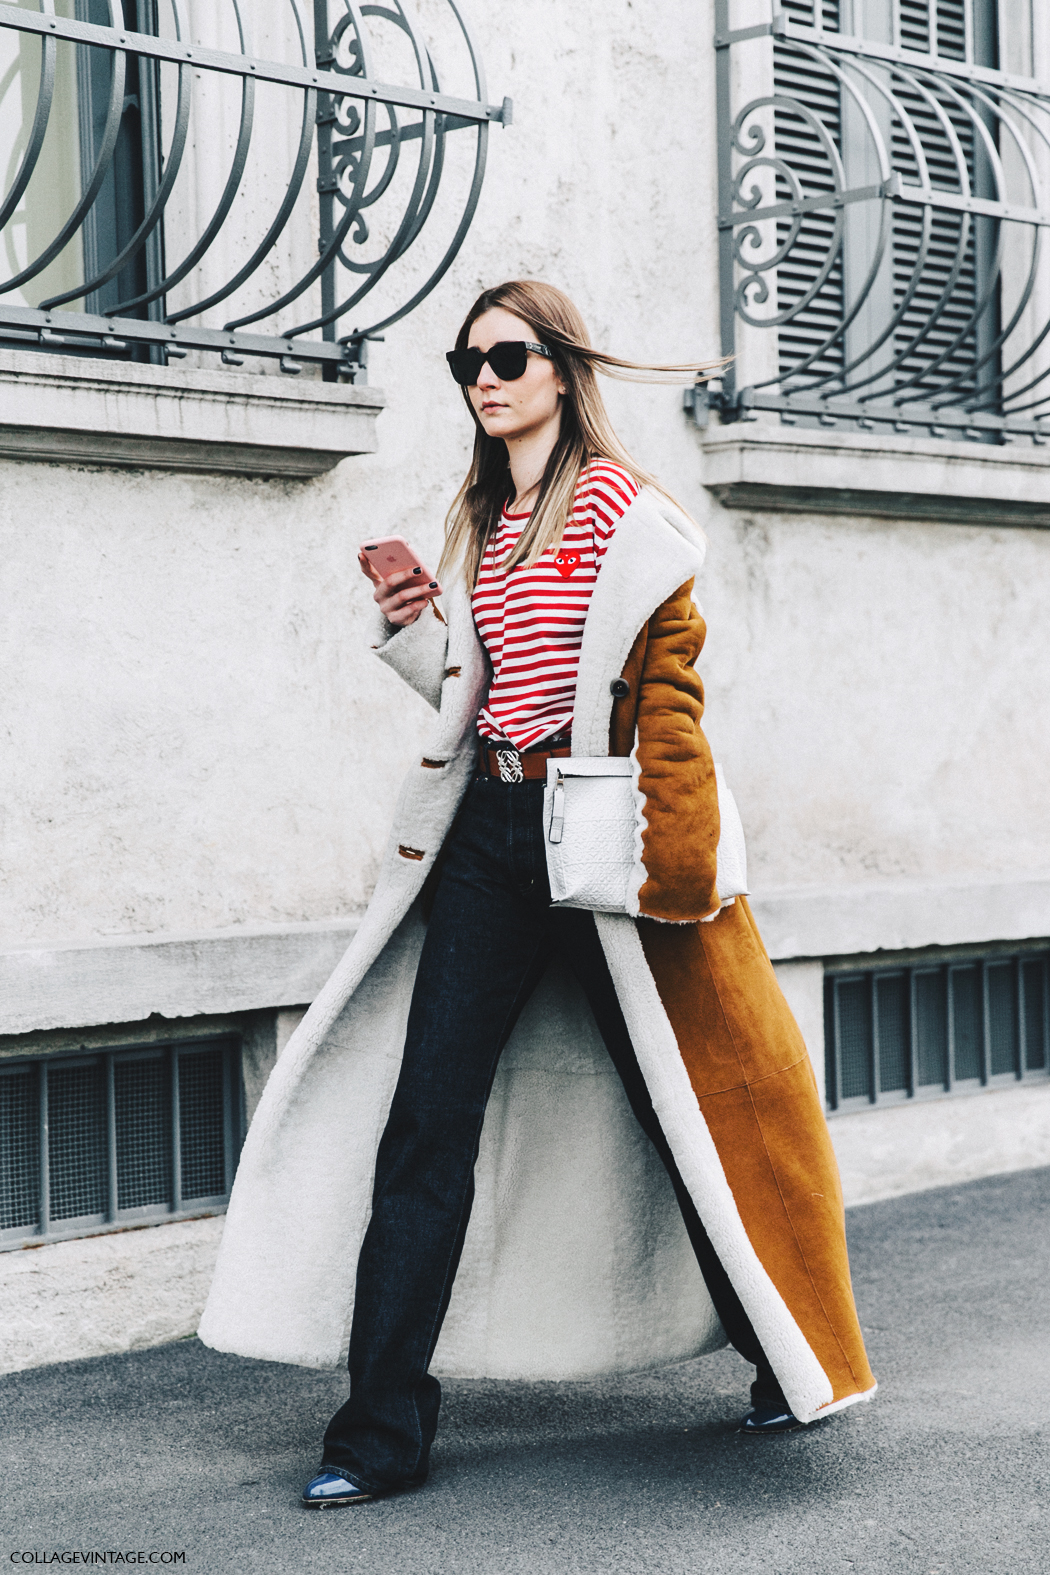 Milan_Fashion_Week_Fall_16-MFW-Street_Style-Collage_Vintage-Chiara_Capitani-Striped_Top-Shearling_Long_Coat-2